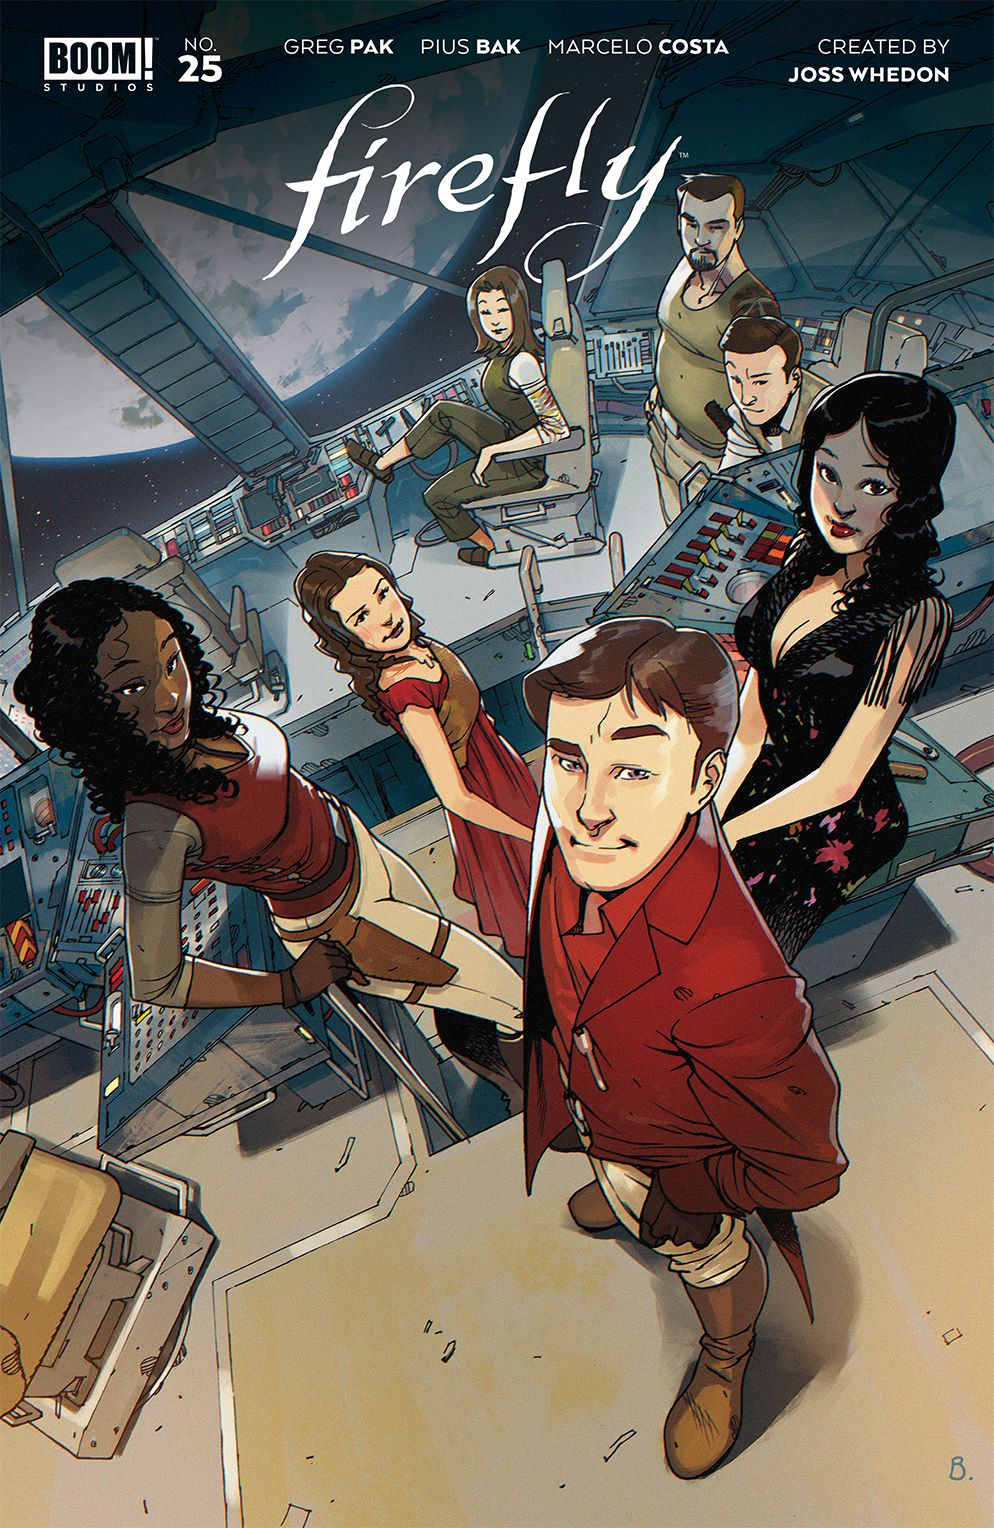 Firefly_025_Cover_A_Main ComicList Previews: FIREFLY #25